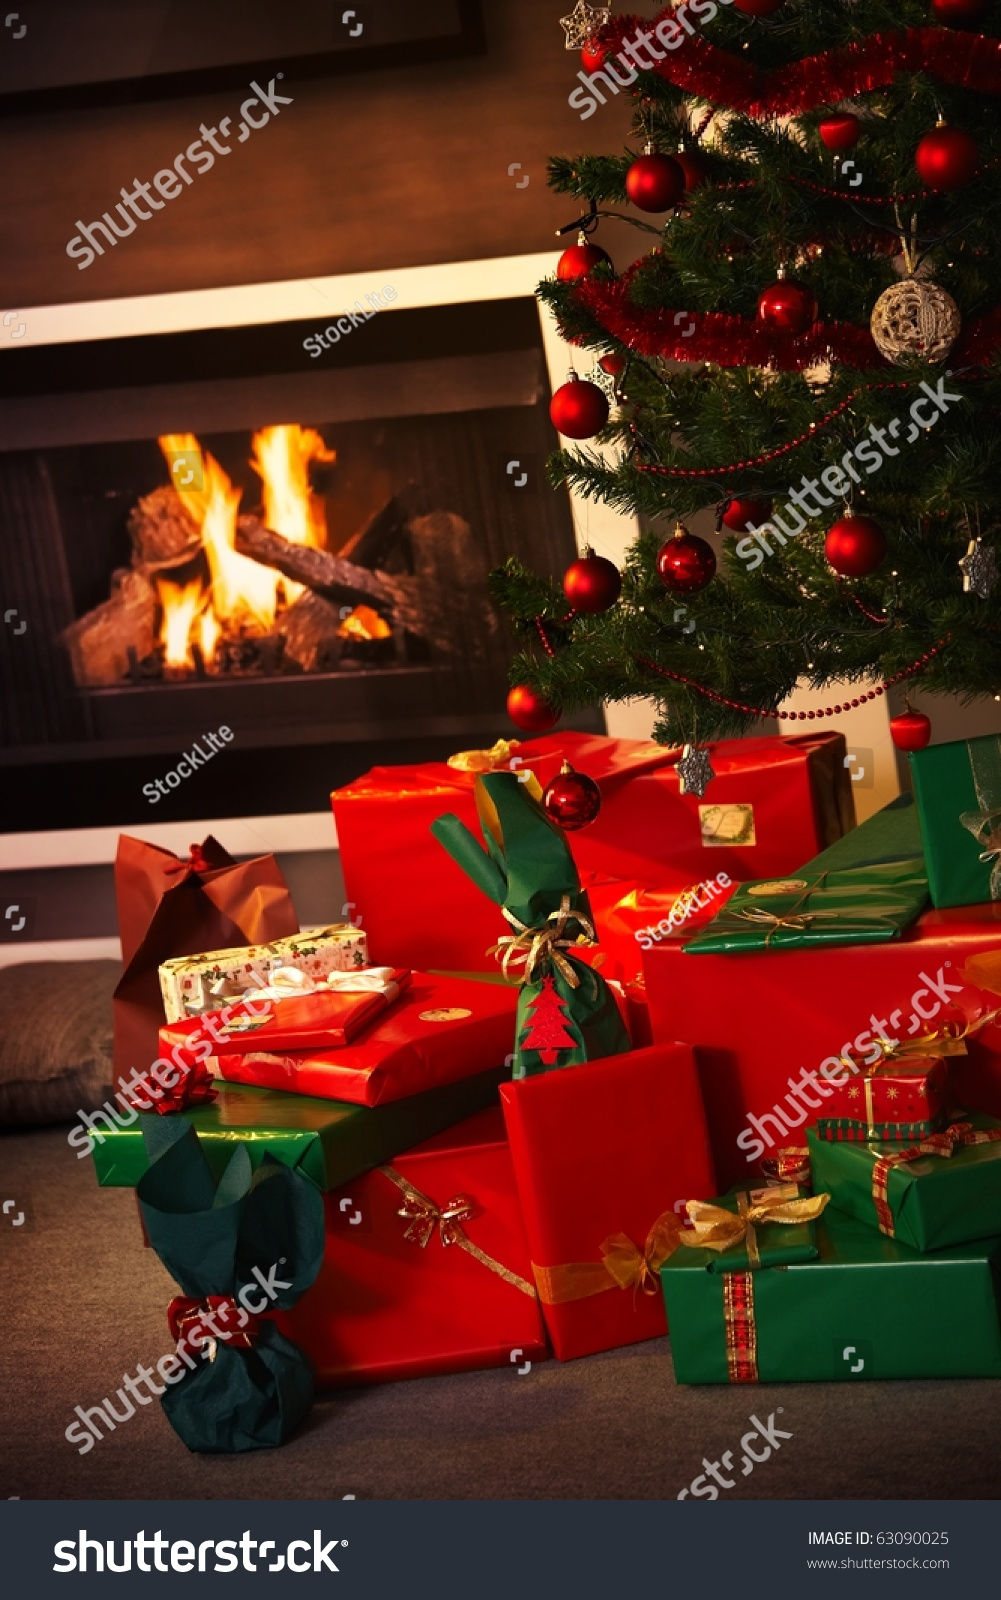 Still life photo of christmas presents and tree